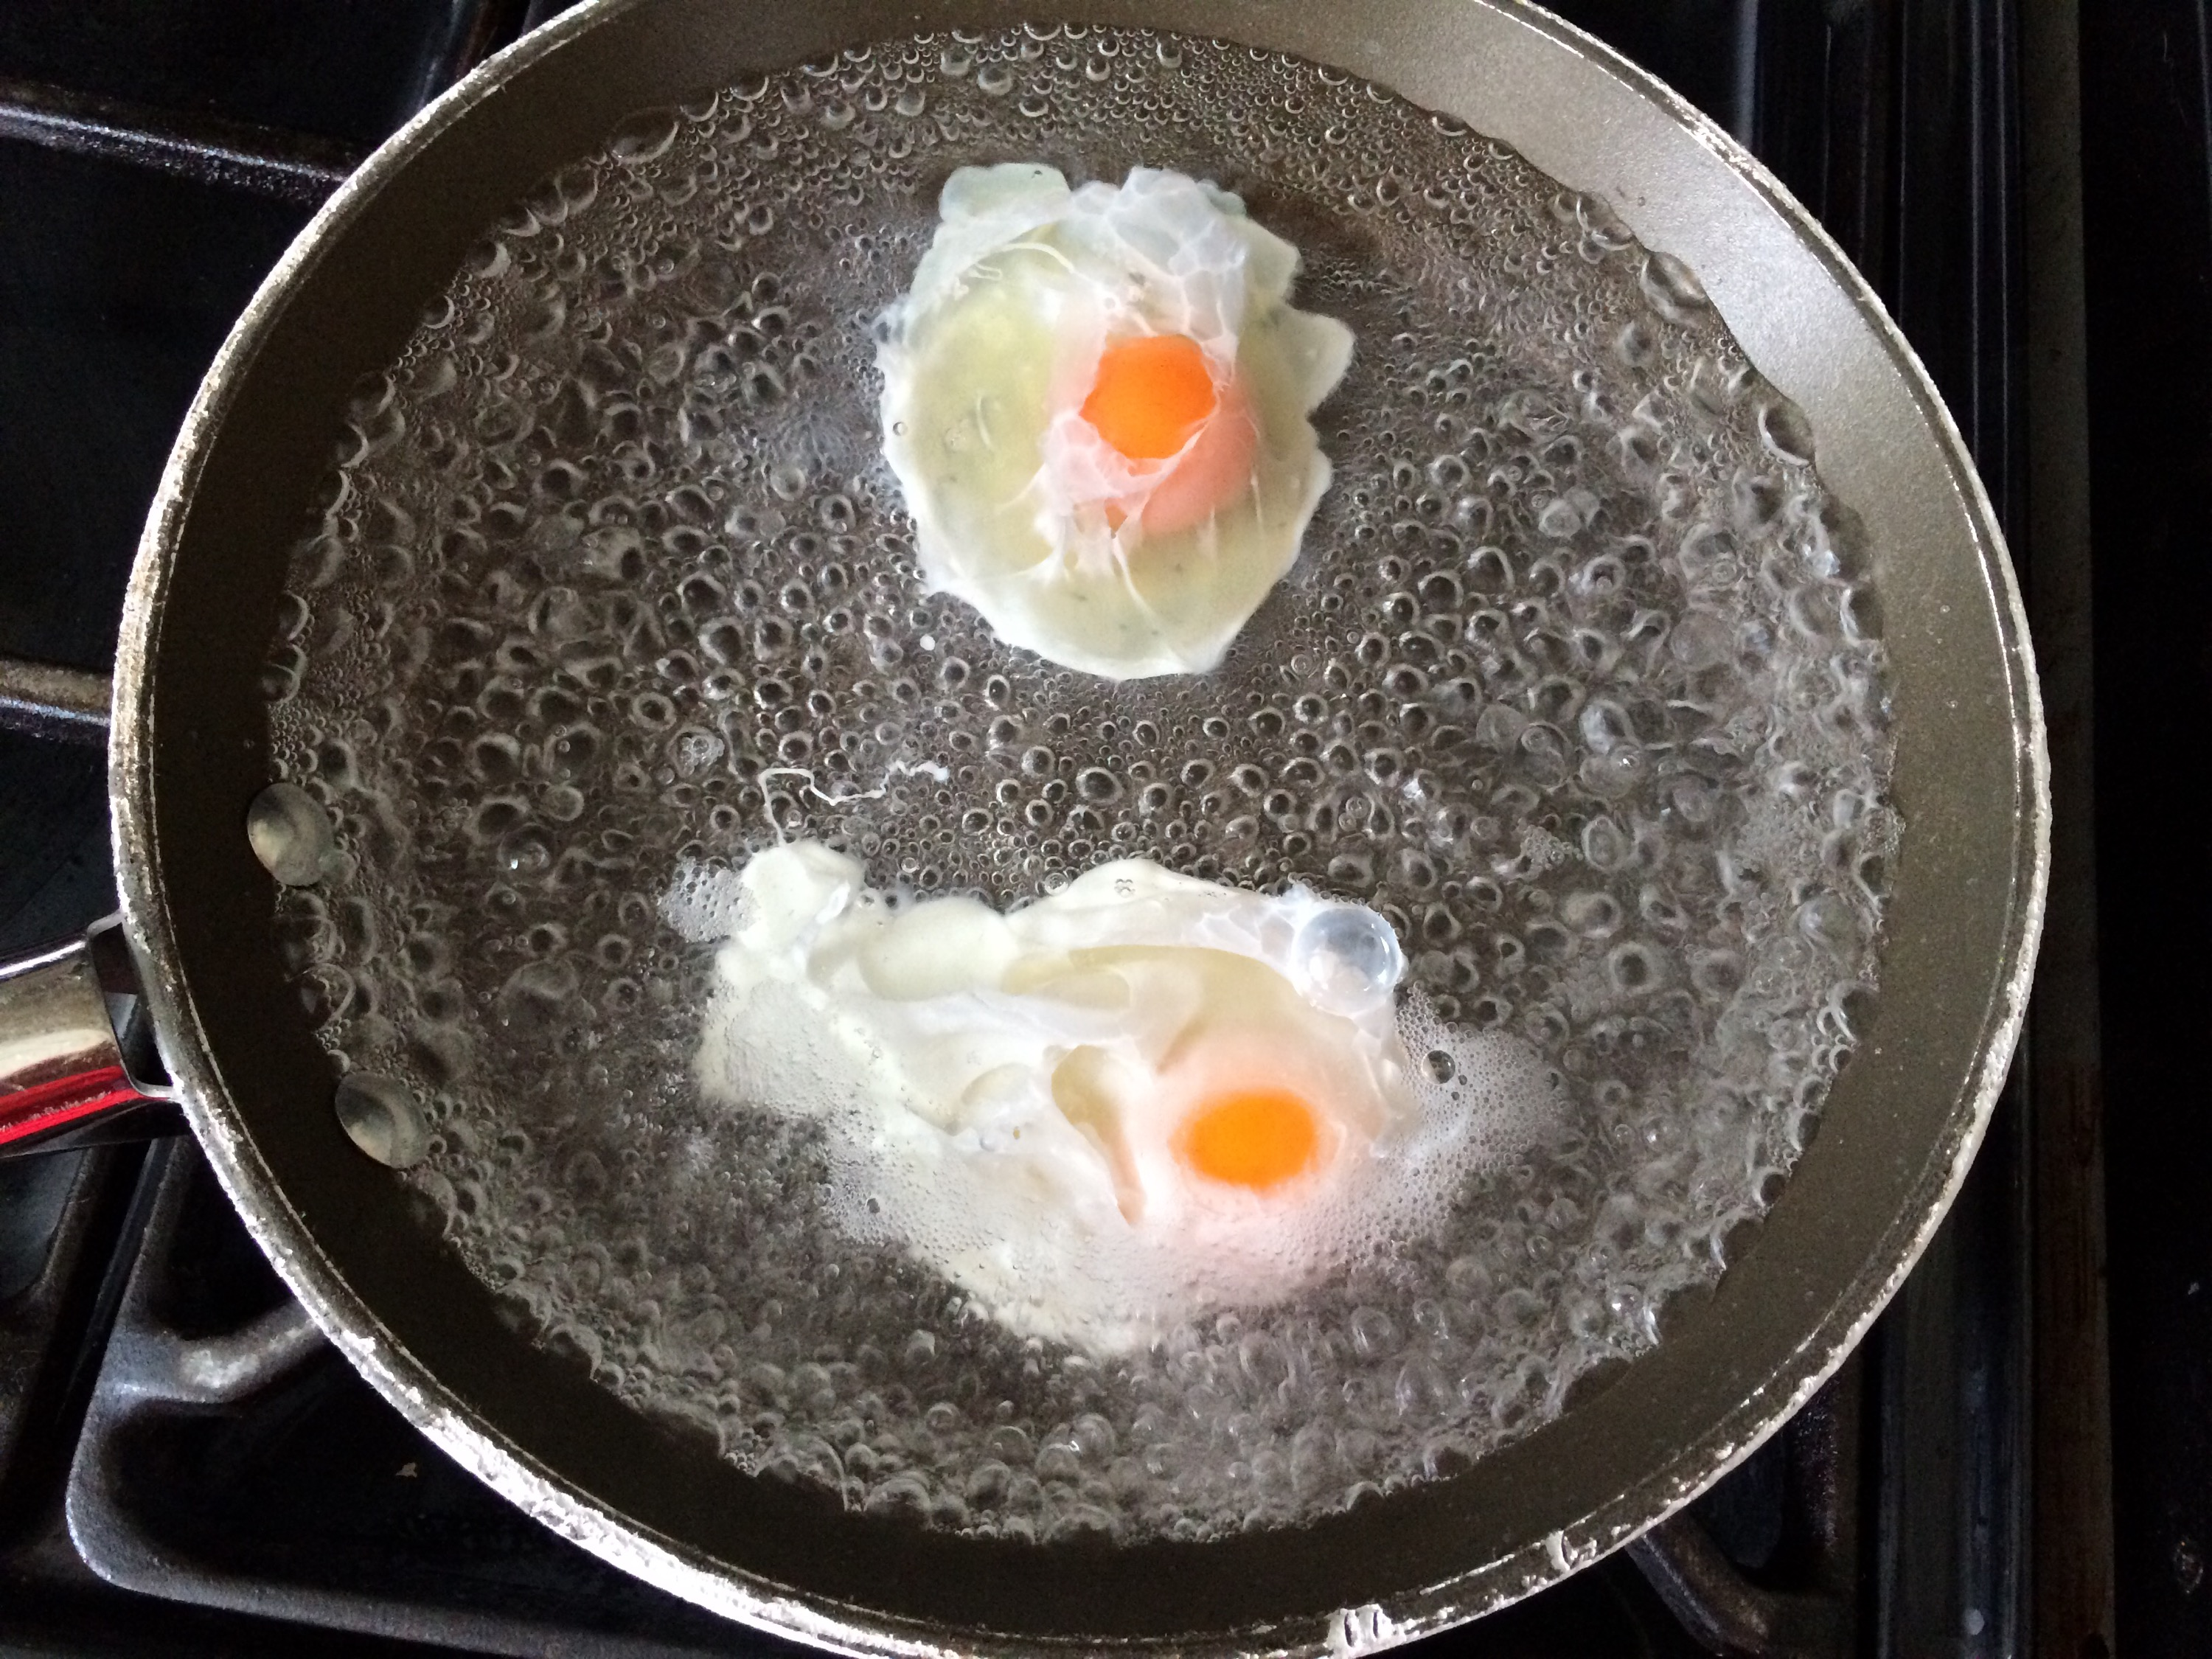 Take Your Perfectly Cooked Egg Out Of The Frying Pan And Put It On Some  Kitchen Paper To Drain Pat It Dry (a Soggy, Watery Egg Is Not A Good Egg)  And